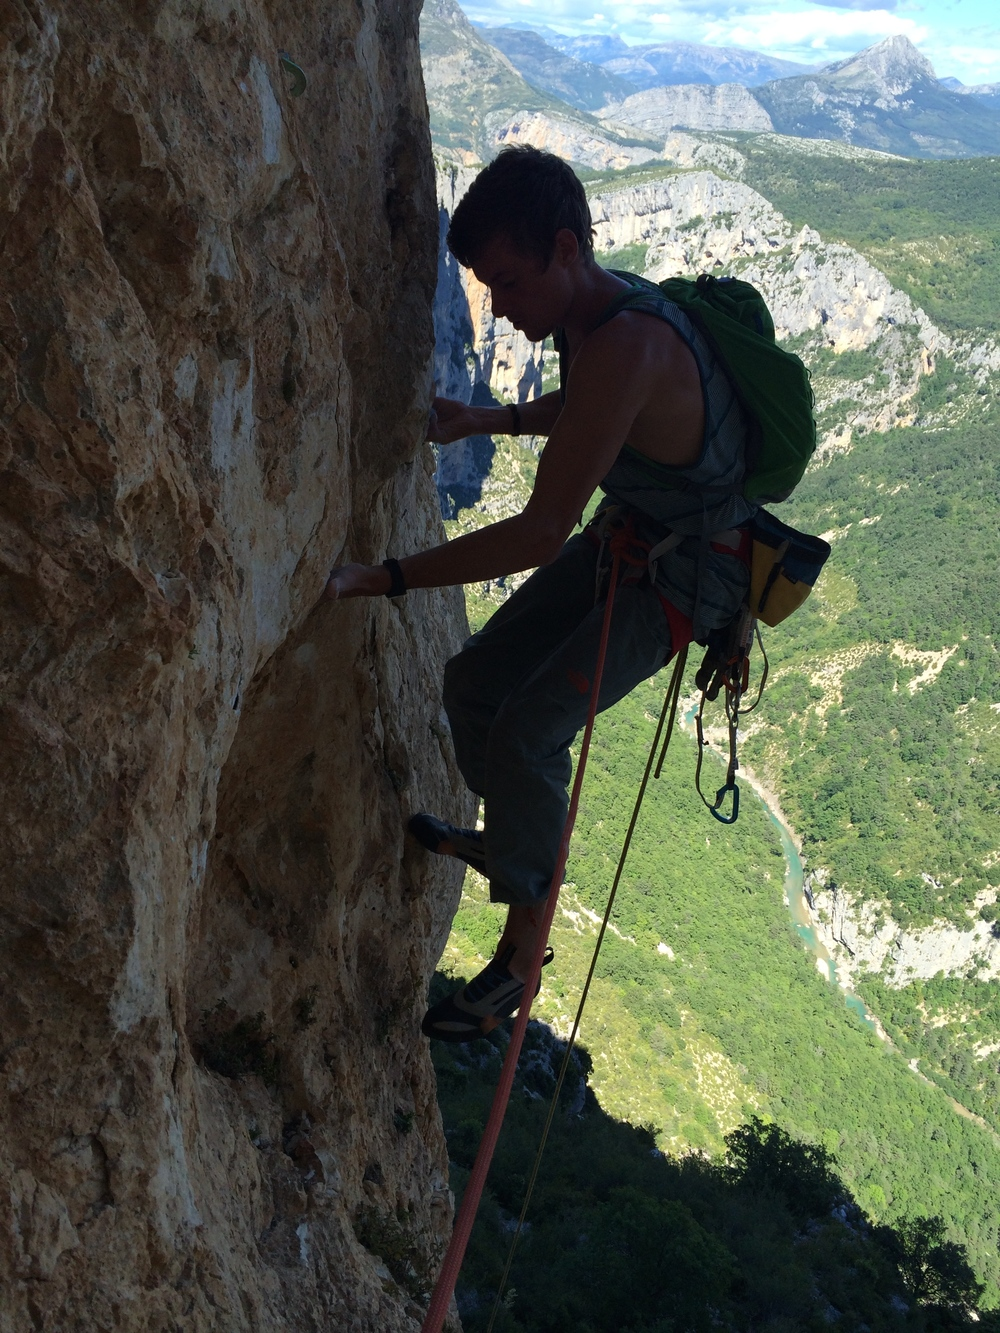 Palmer in the Verdon Gorge, France 2014